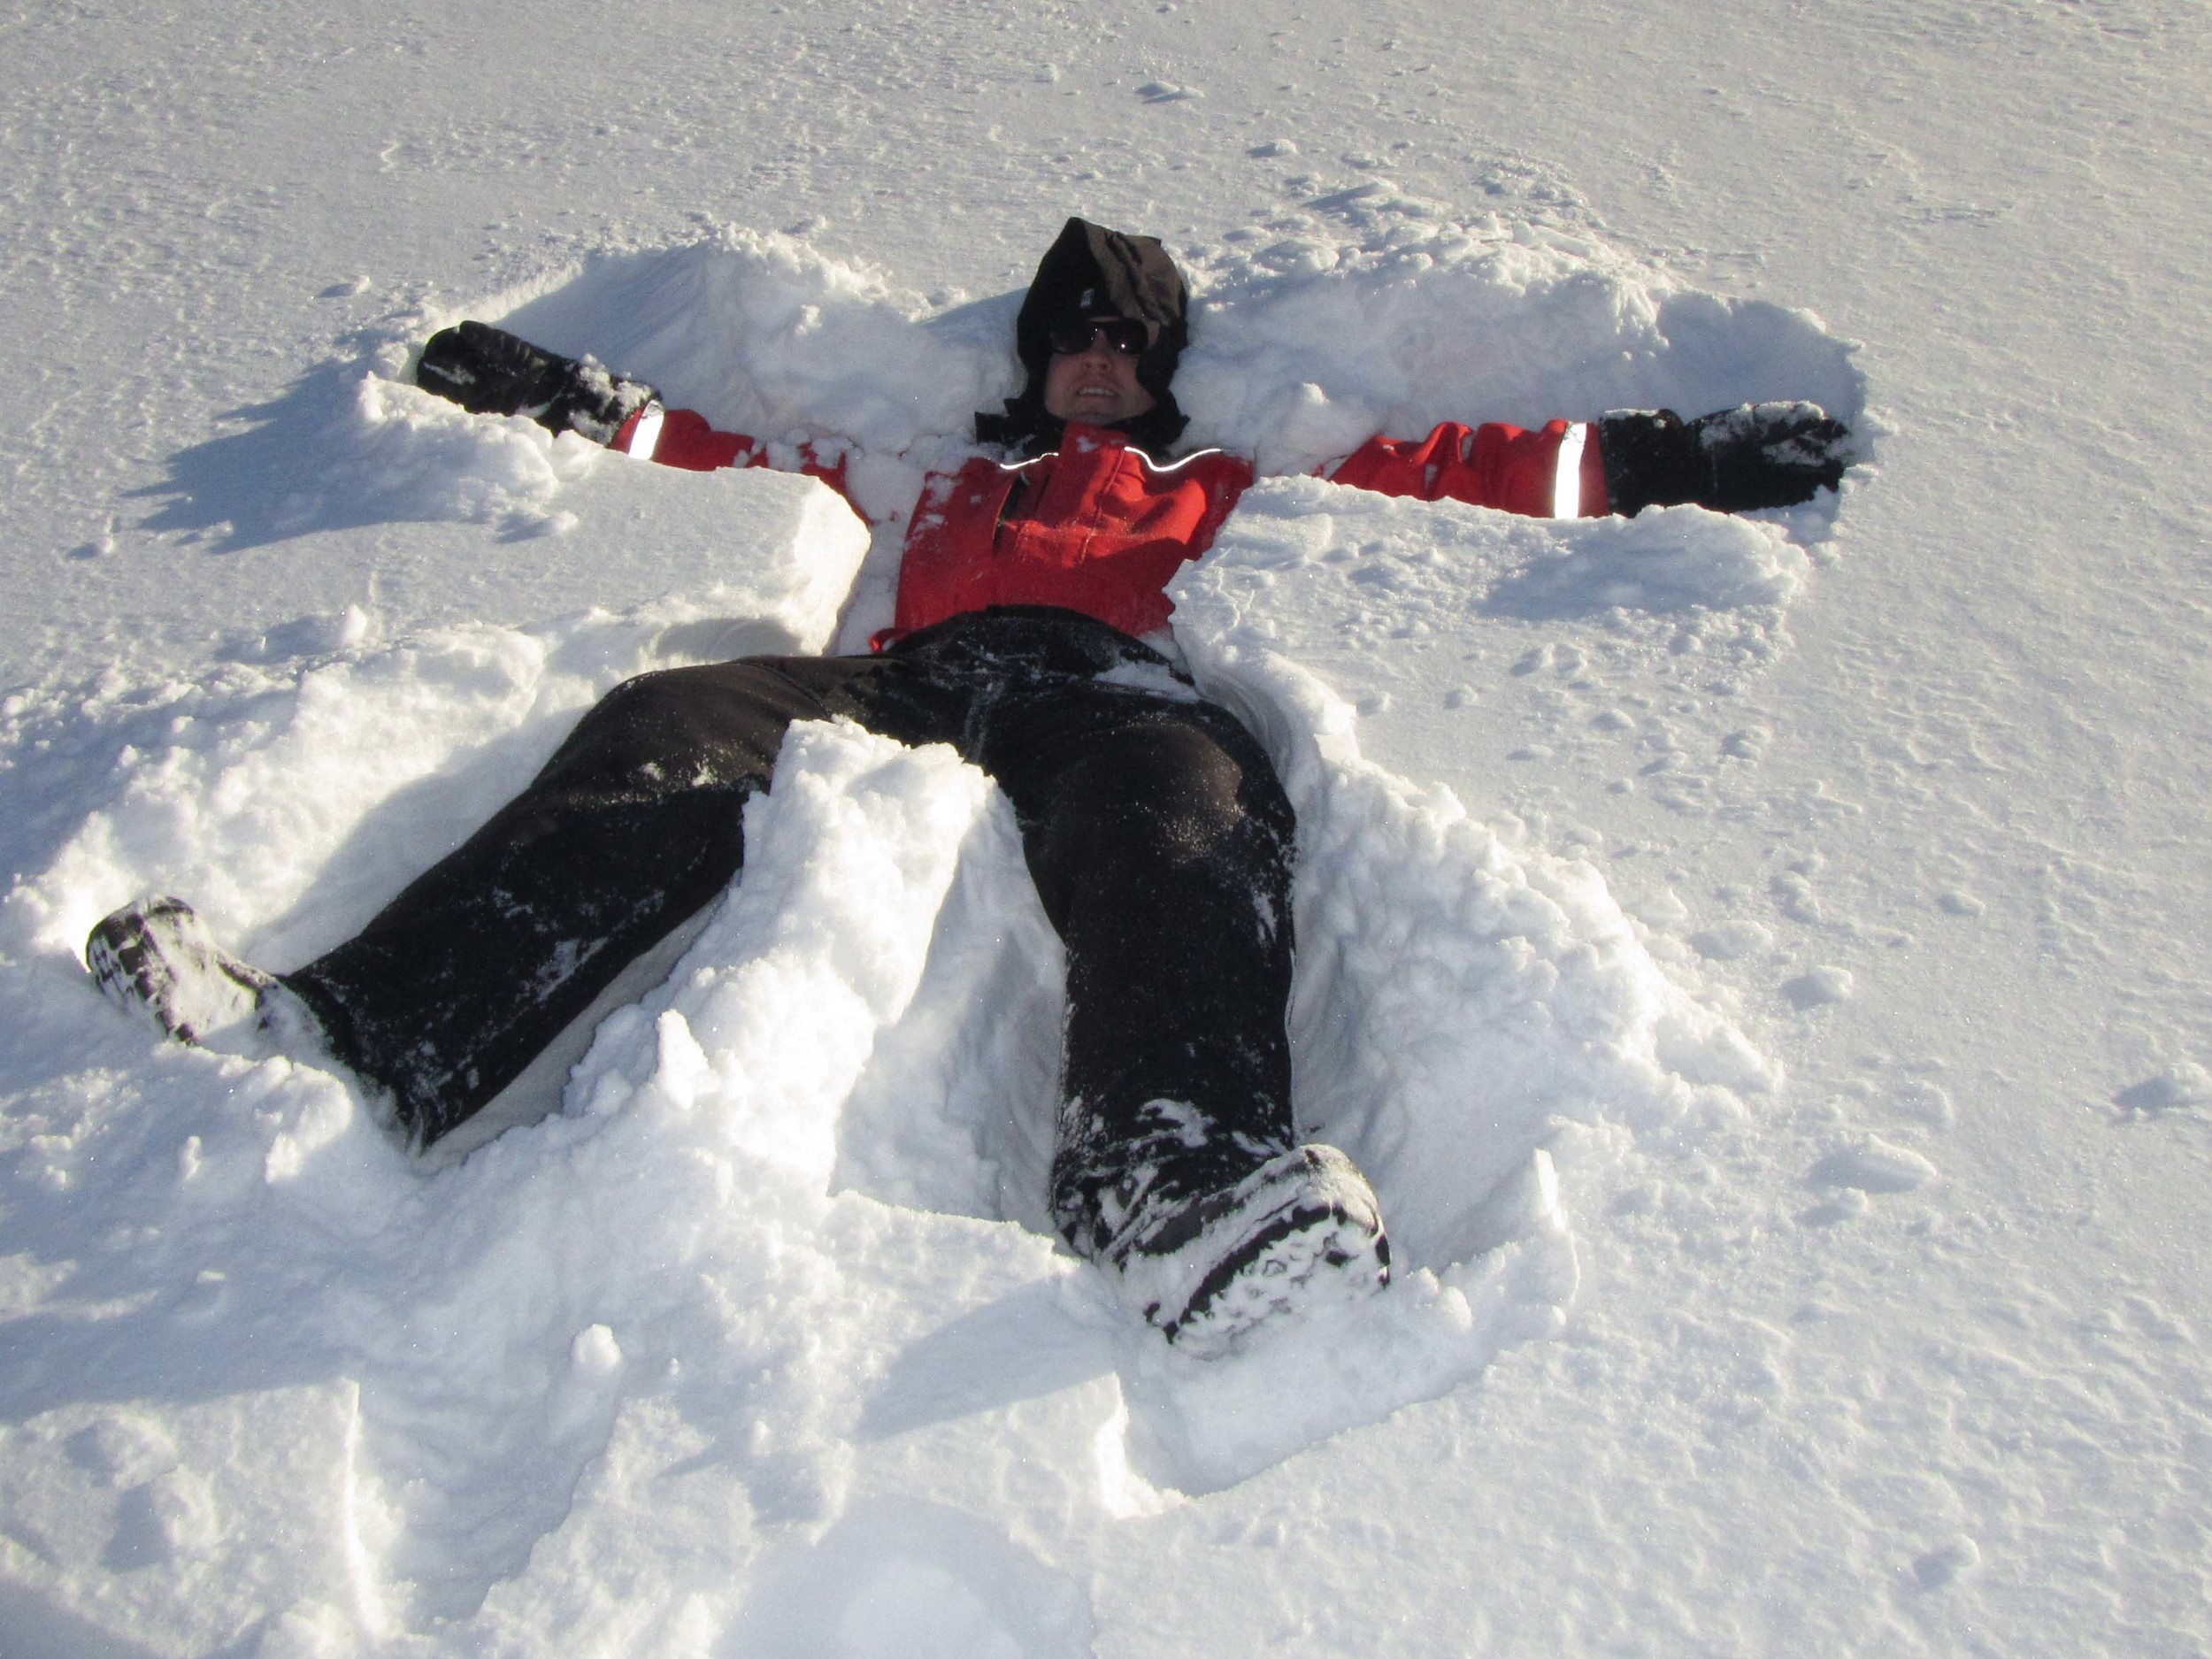 Aaron after he jumped into the fresh snow